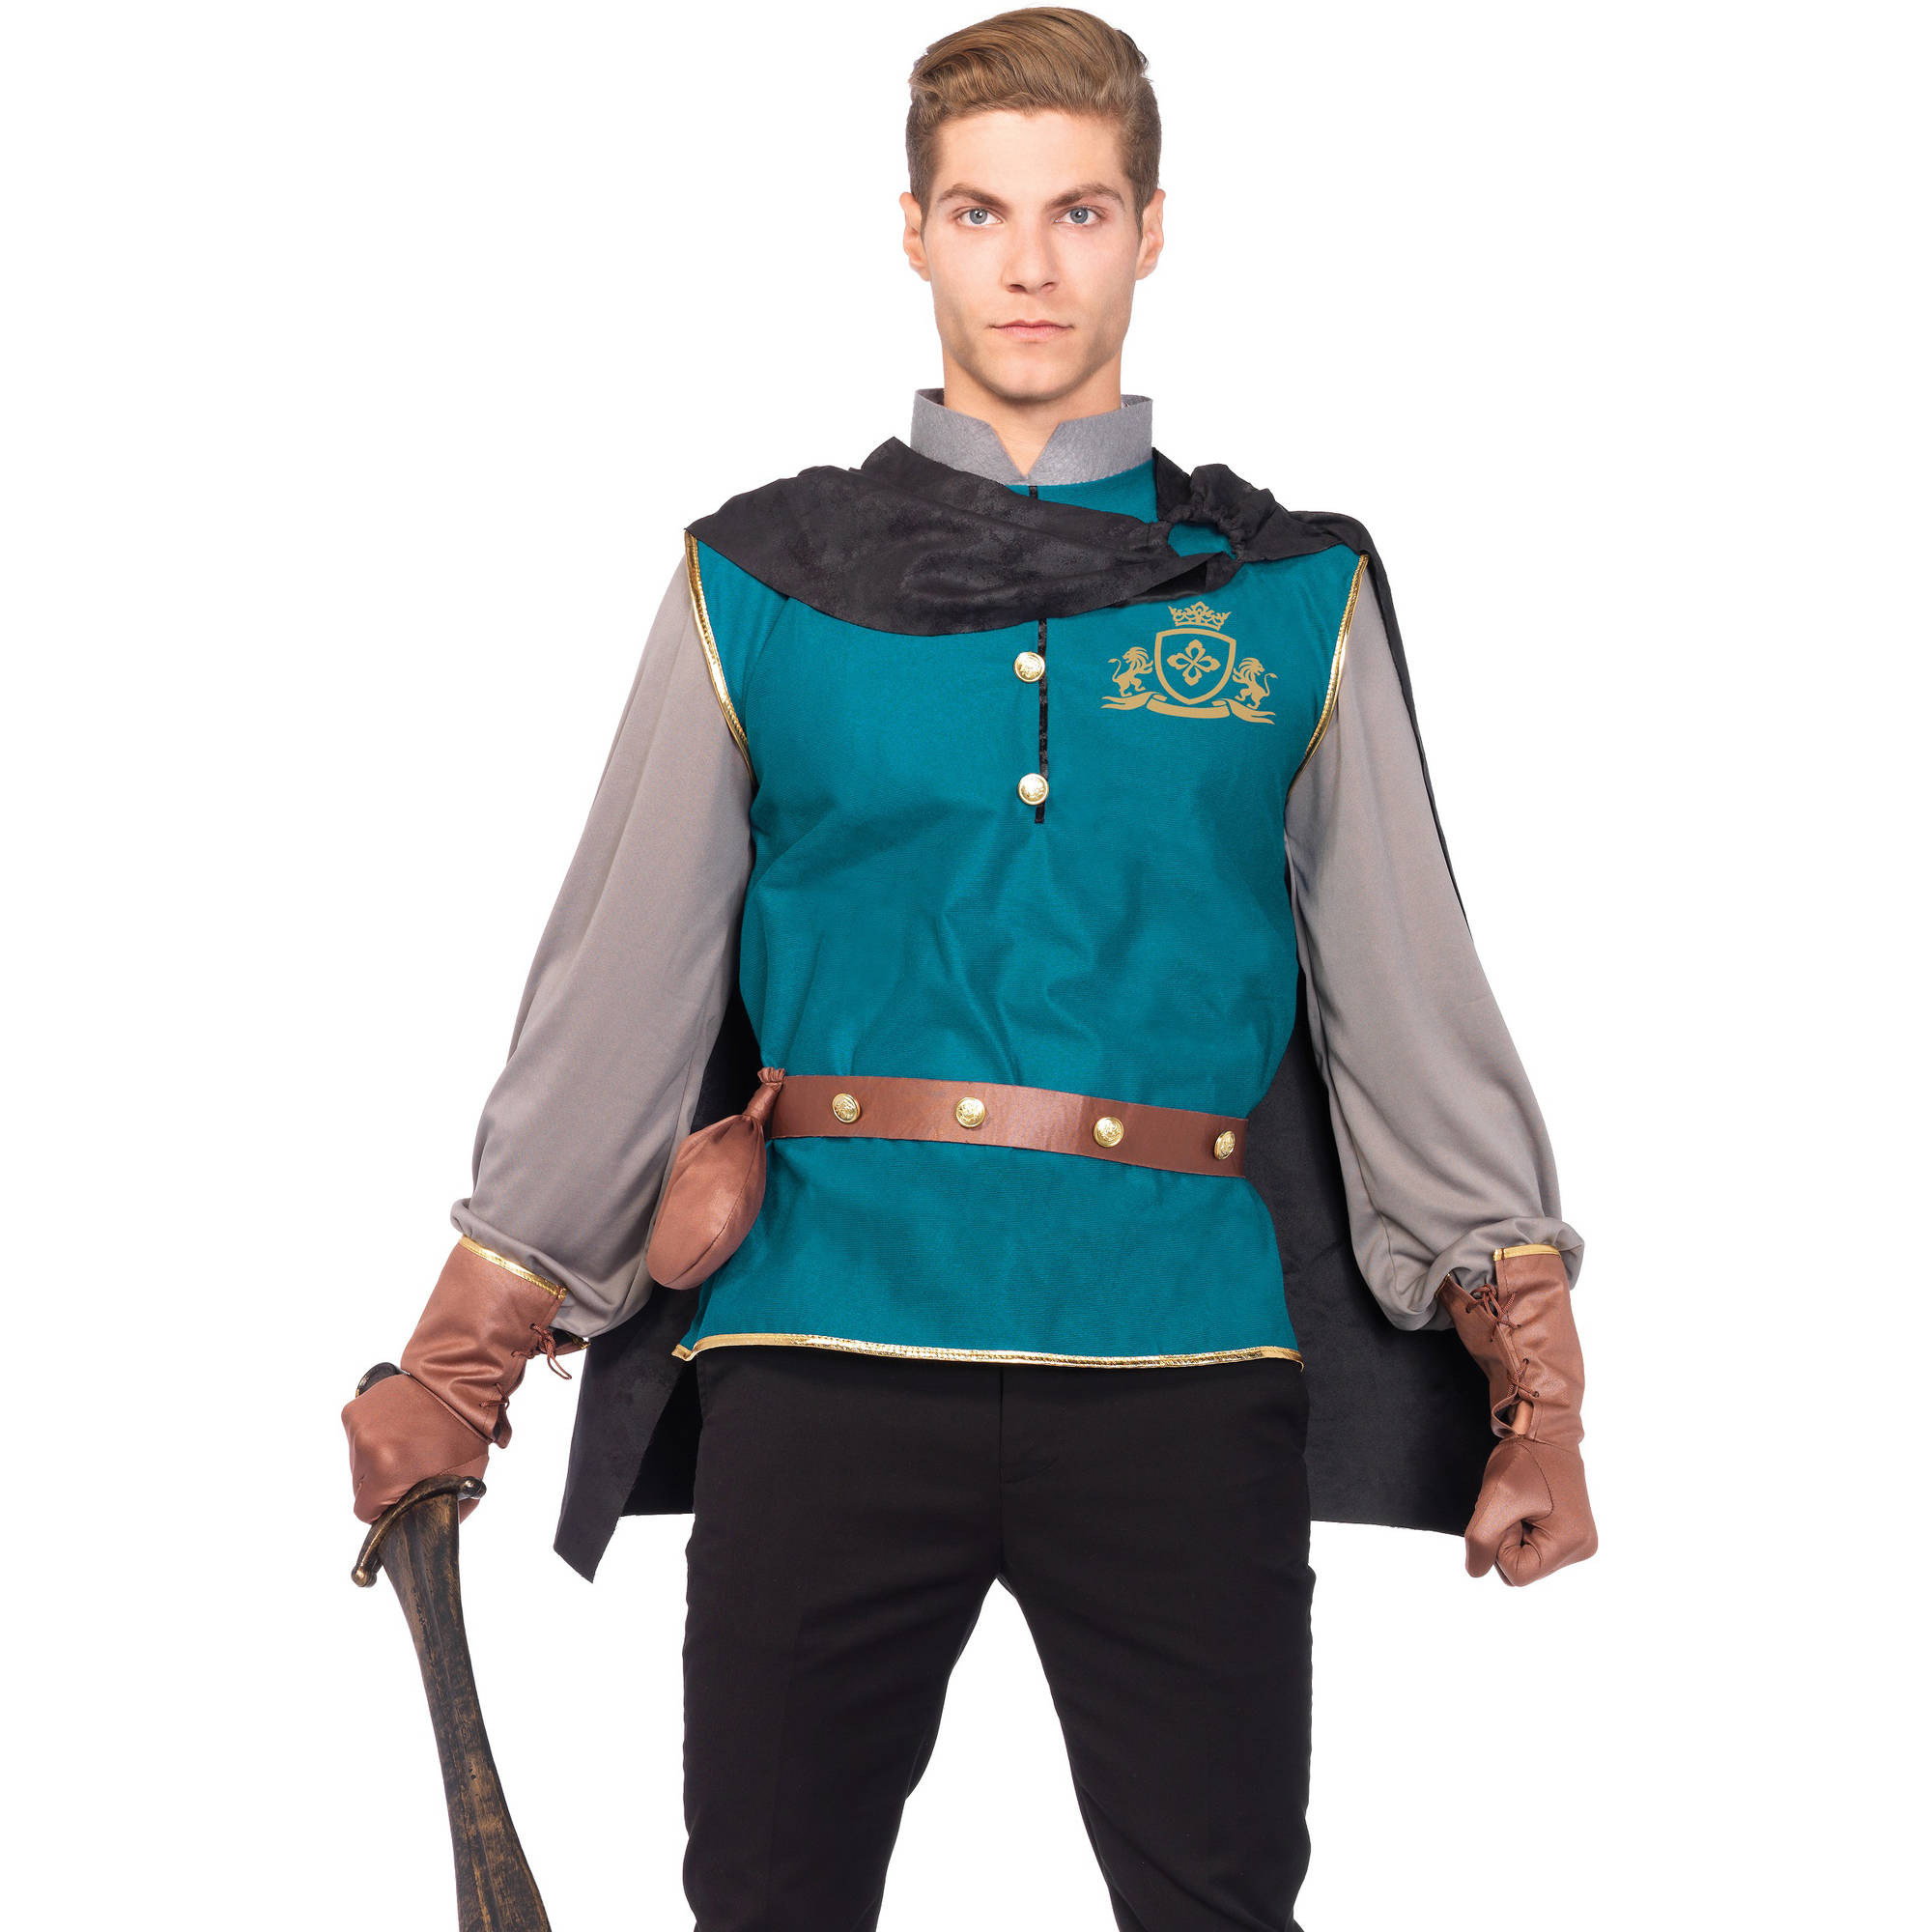 Leg Avenue Storybook Prince 4-Piece Adult Halloween Costume